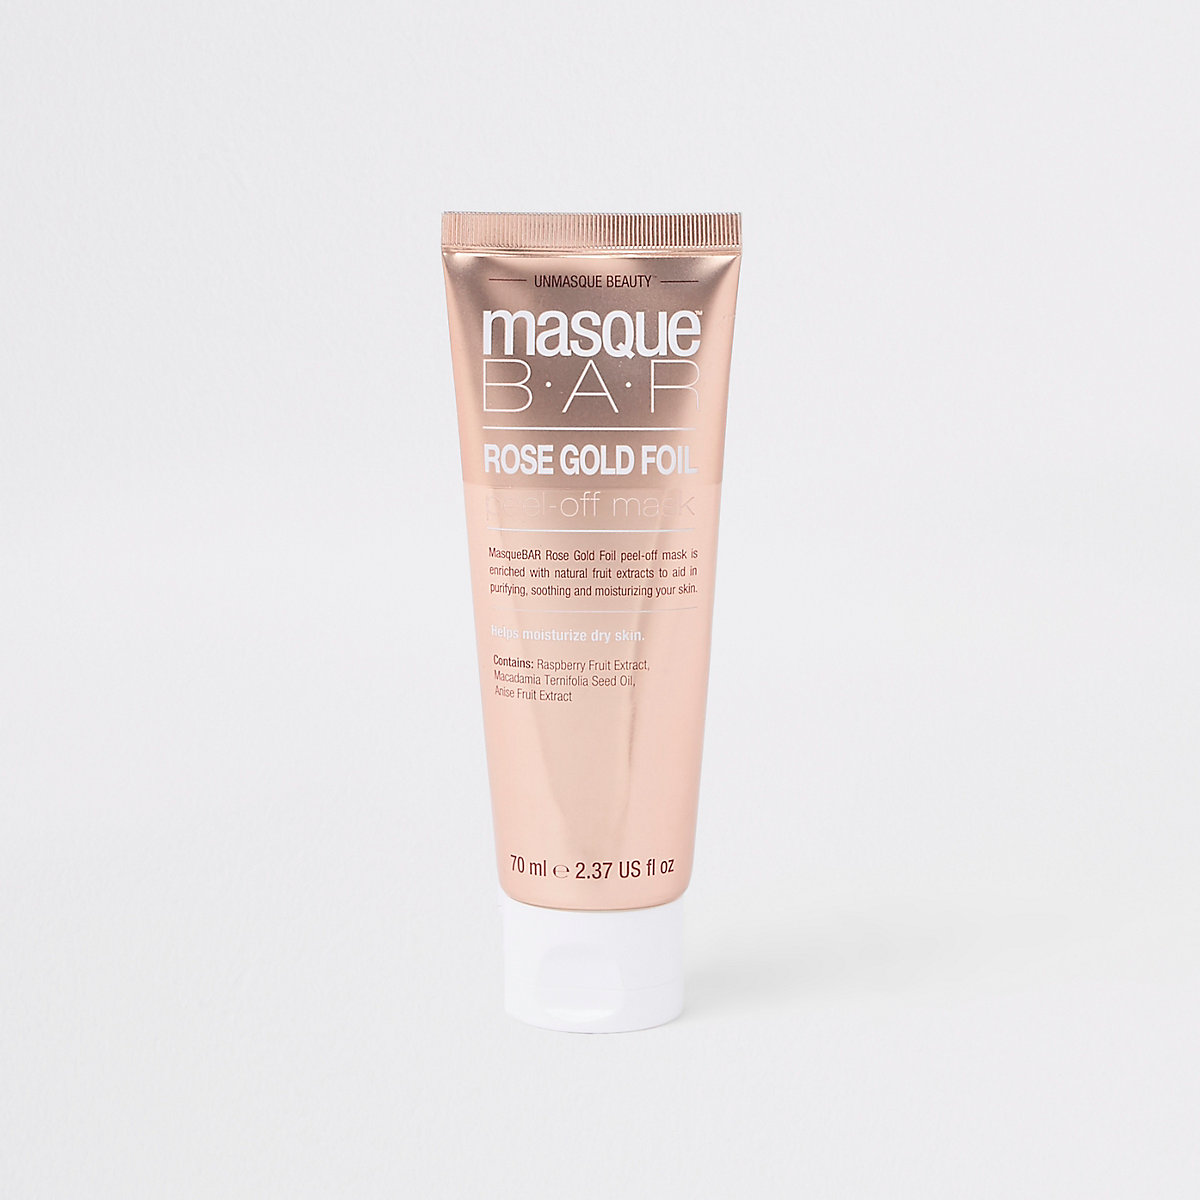 Masque Bar rose gold face mask tube